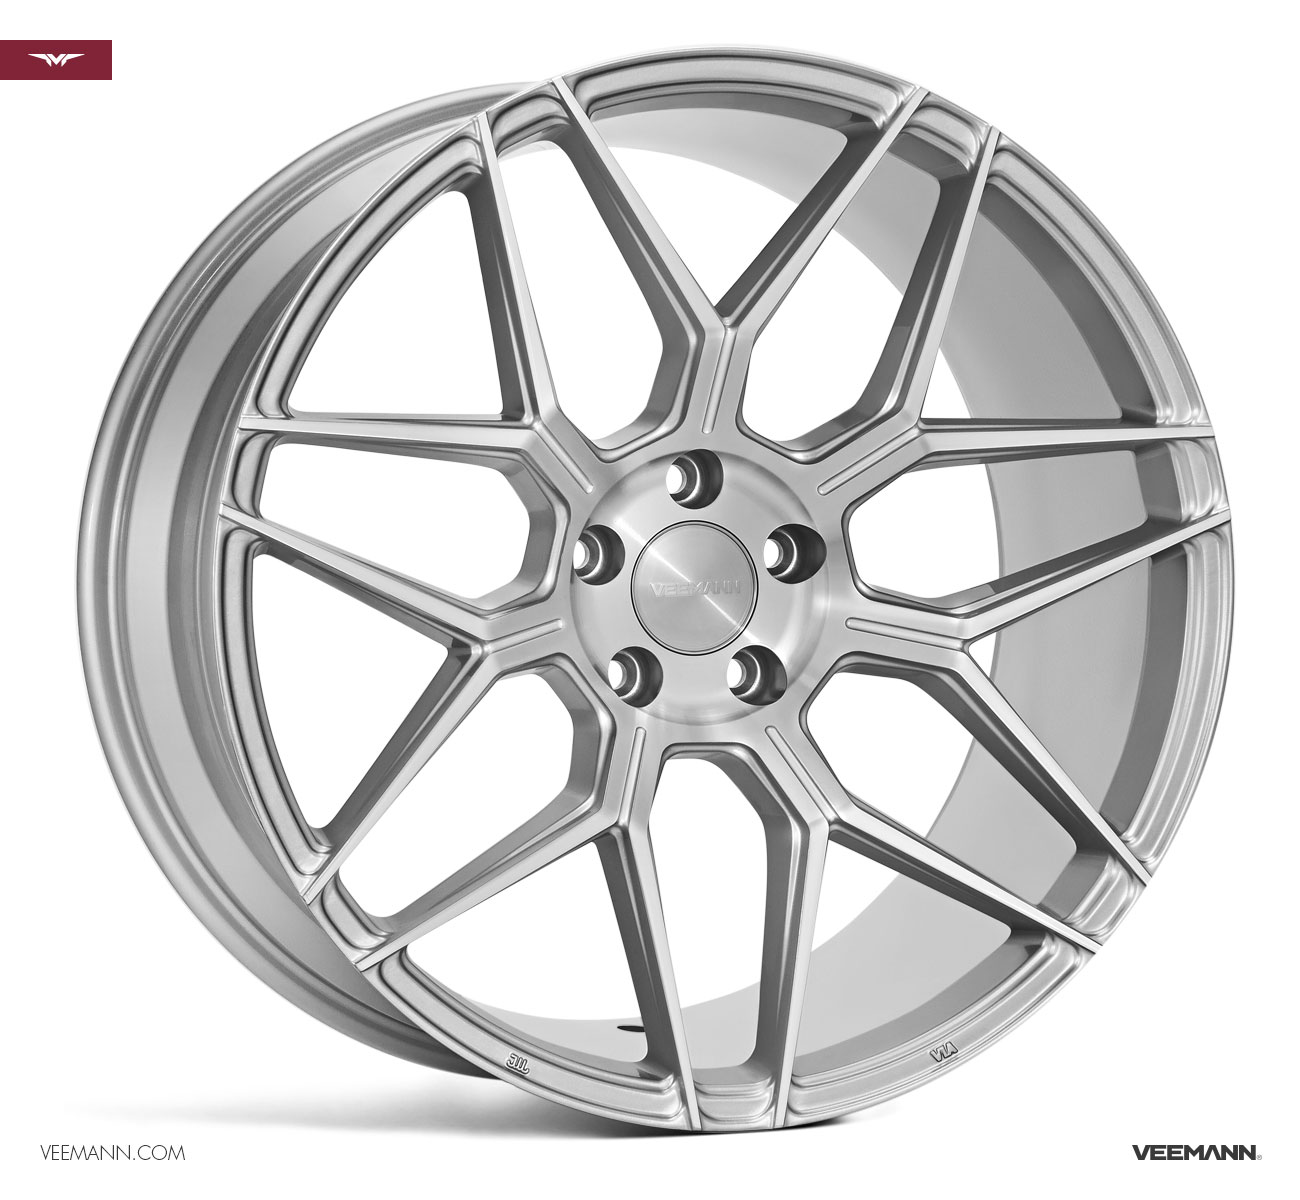 "NEW 18"" VEEMANN V-FS38 ALLOY WHEELS IN SILVER POL WITH WIDER 9"" REAR"